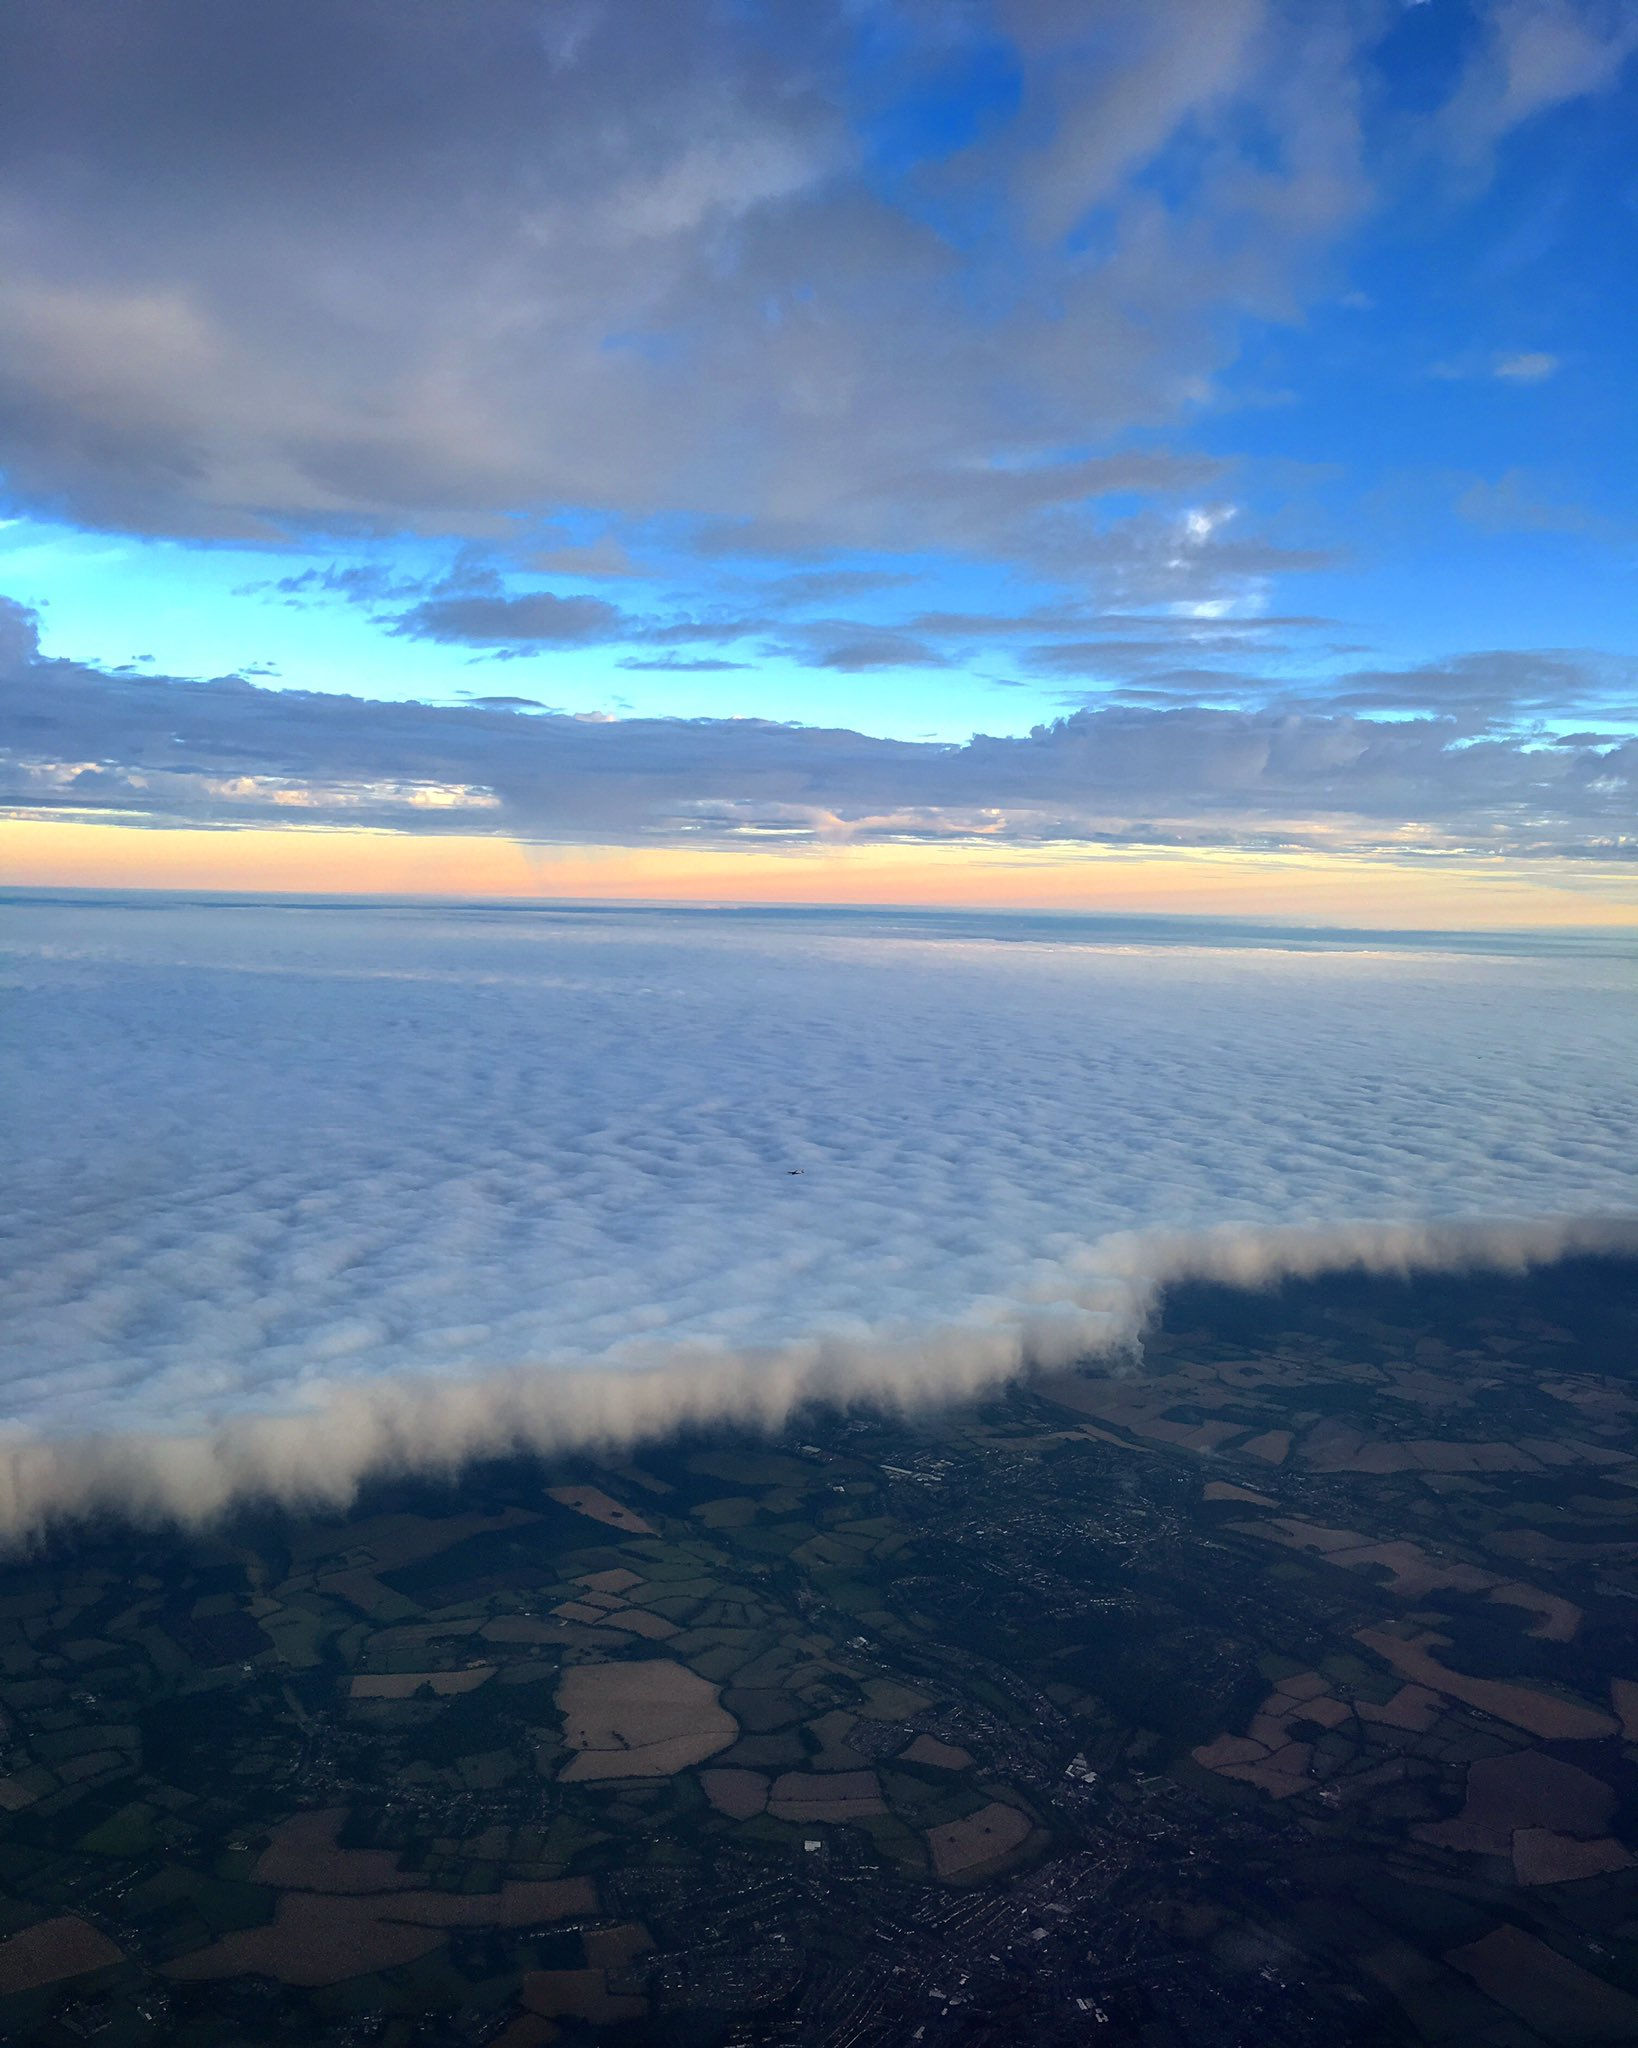 Interesting cloud formation in hold at LHR this evening @CloudAppSoc @HeathrowAirport https://t.co/yqcl1DoHR0